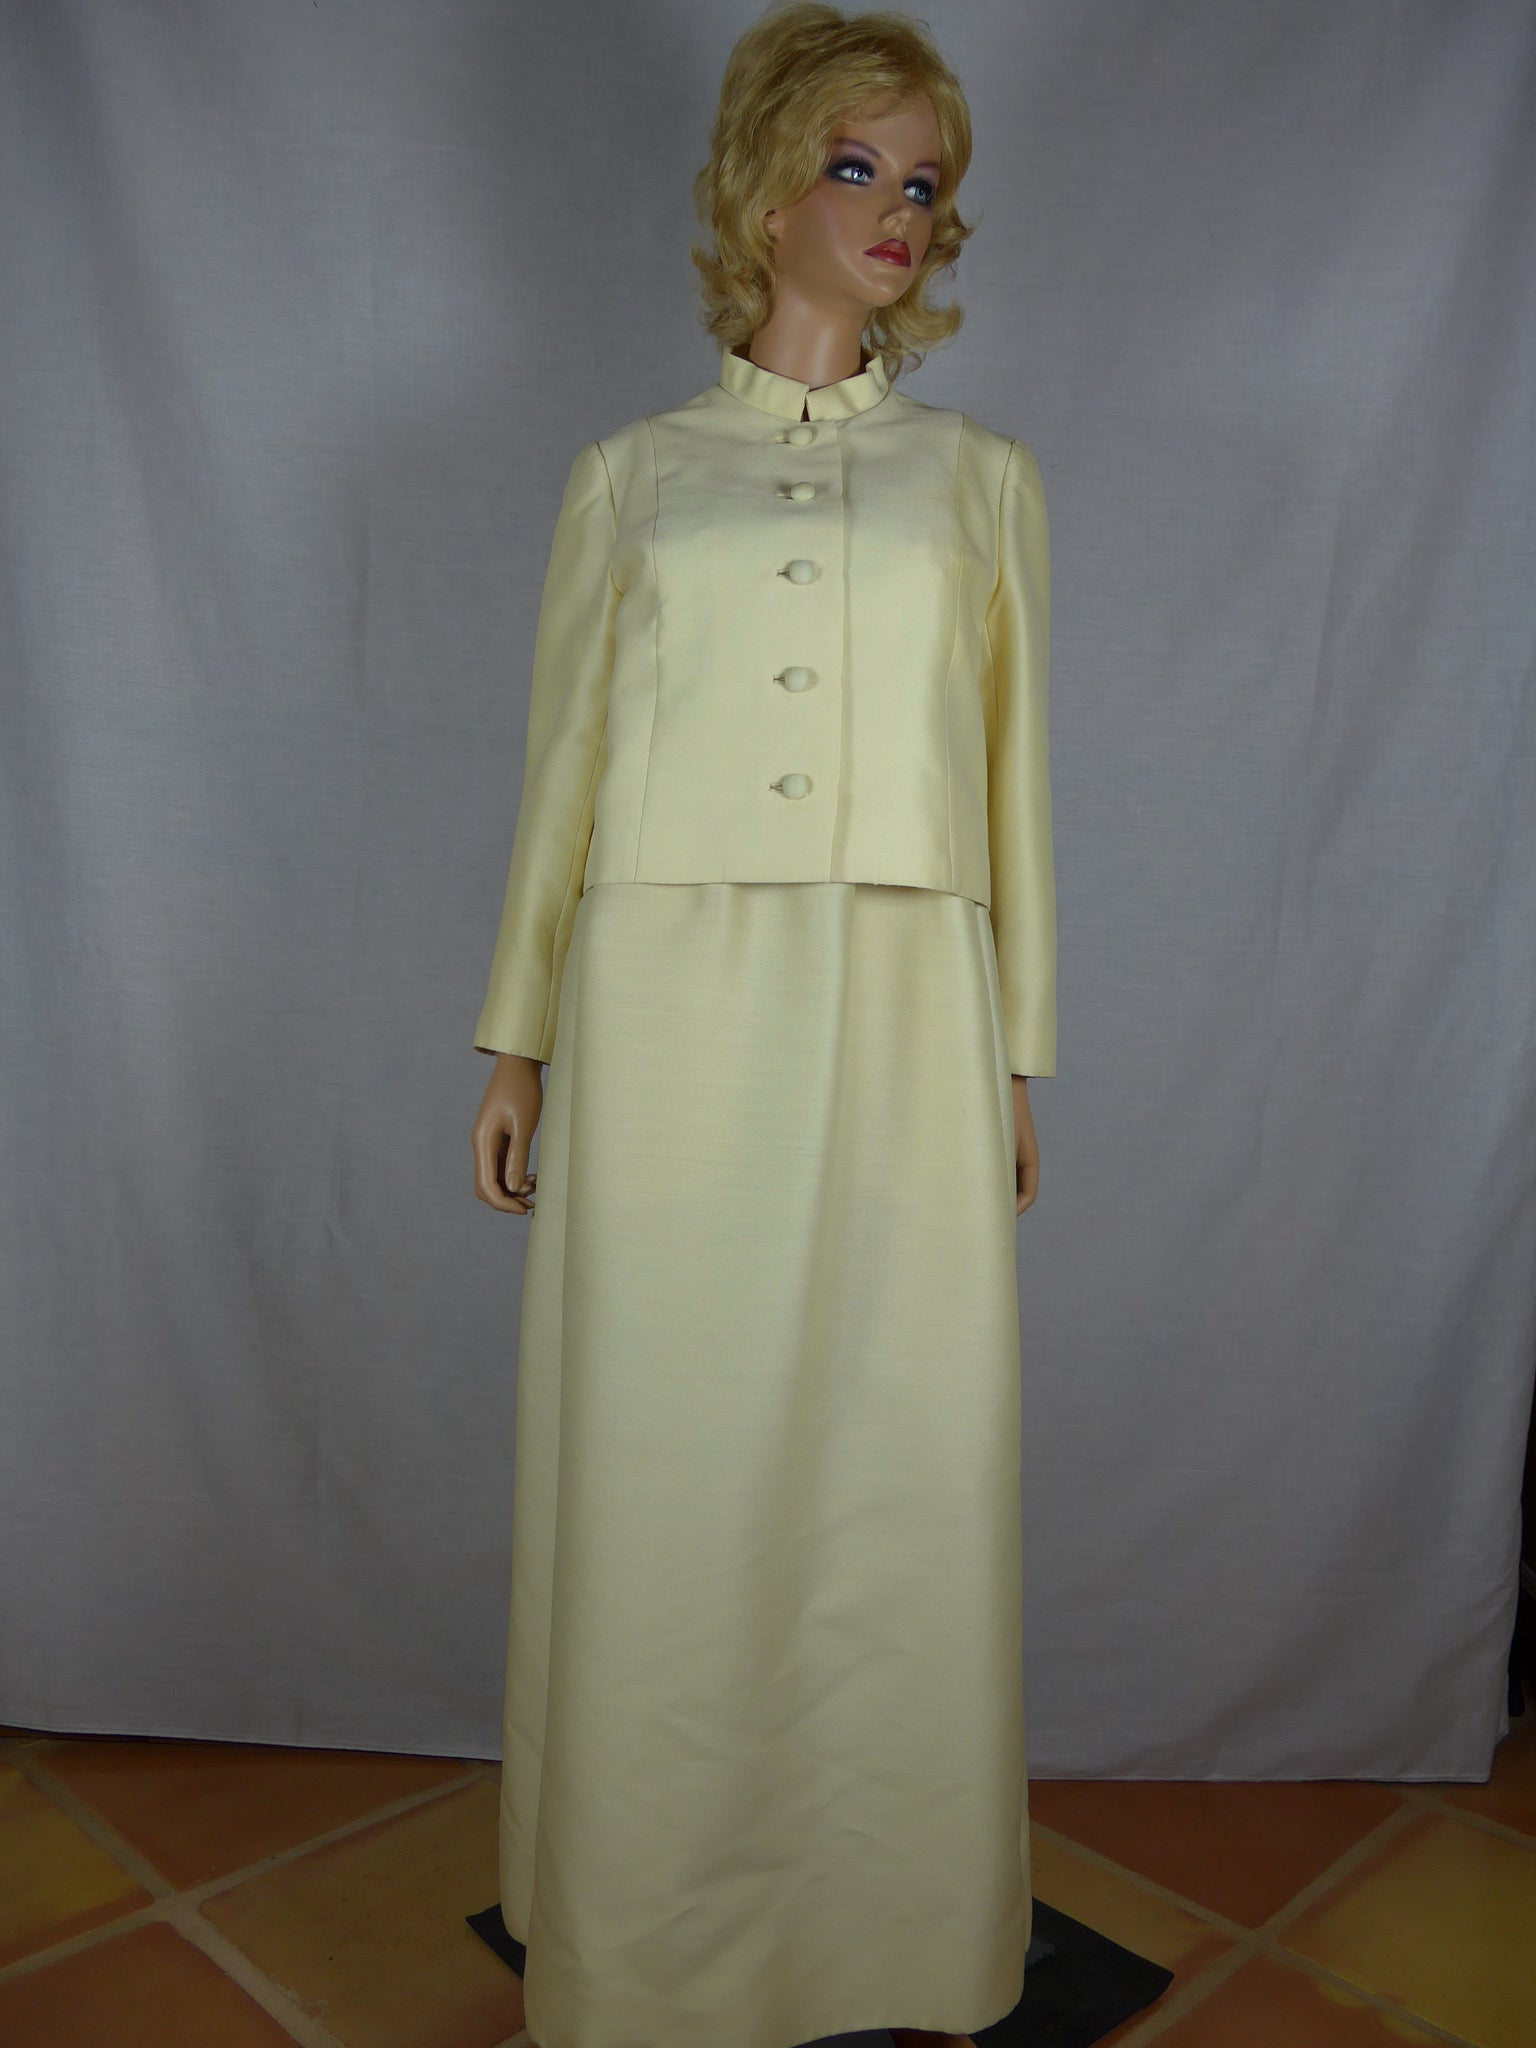 Designer Unknown, 1970s cream-colored evening gown – Vintage ...